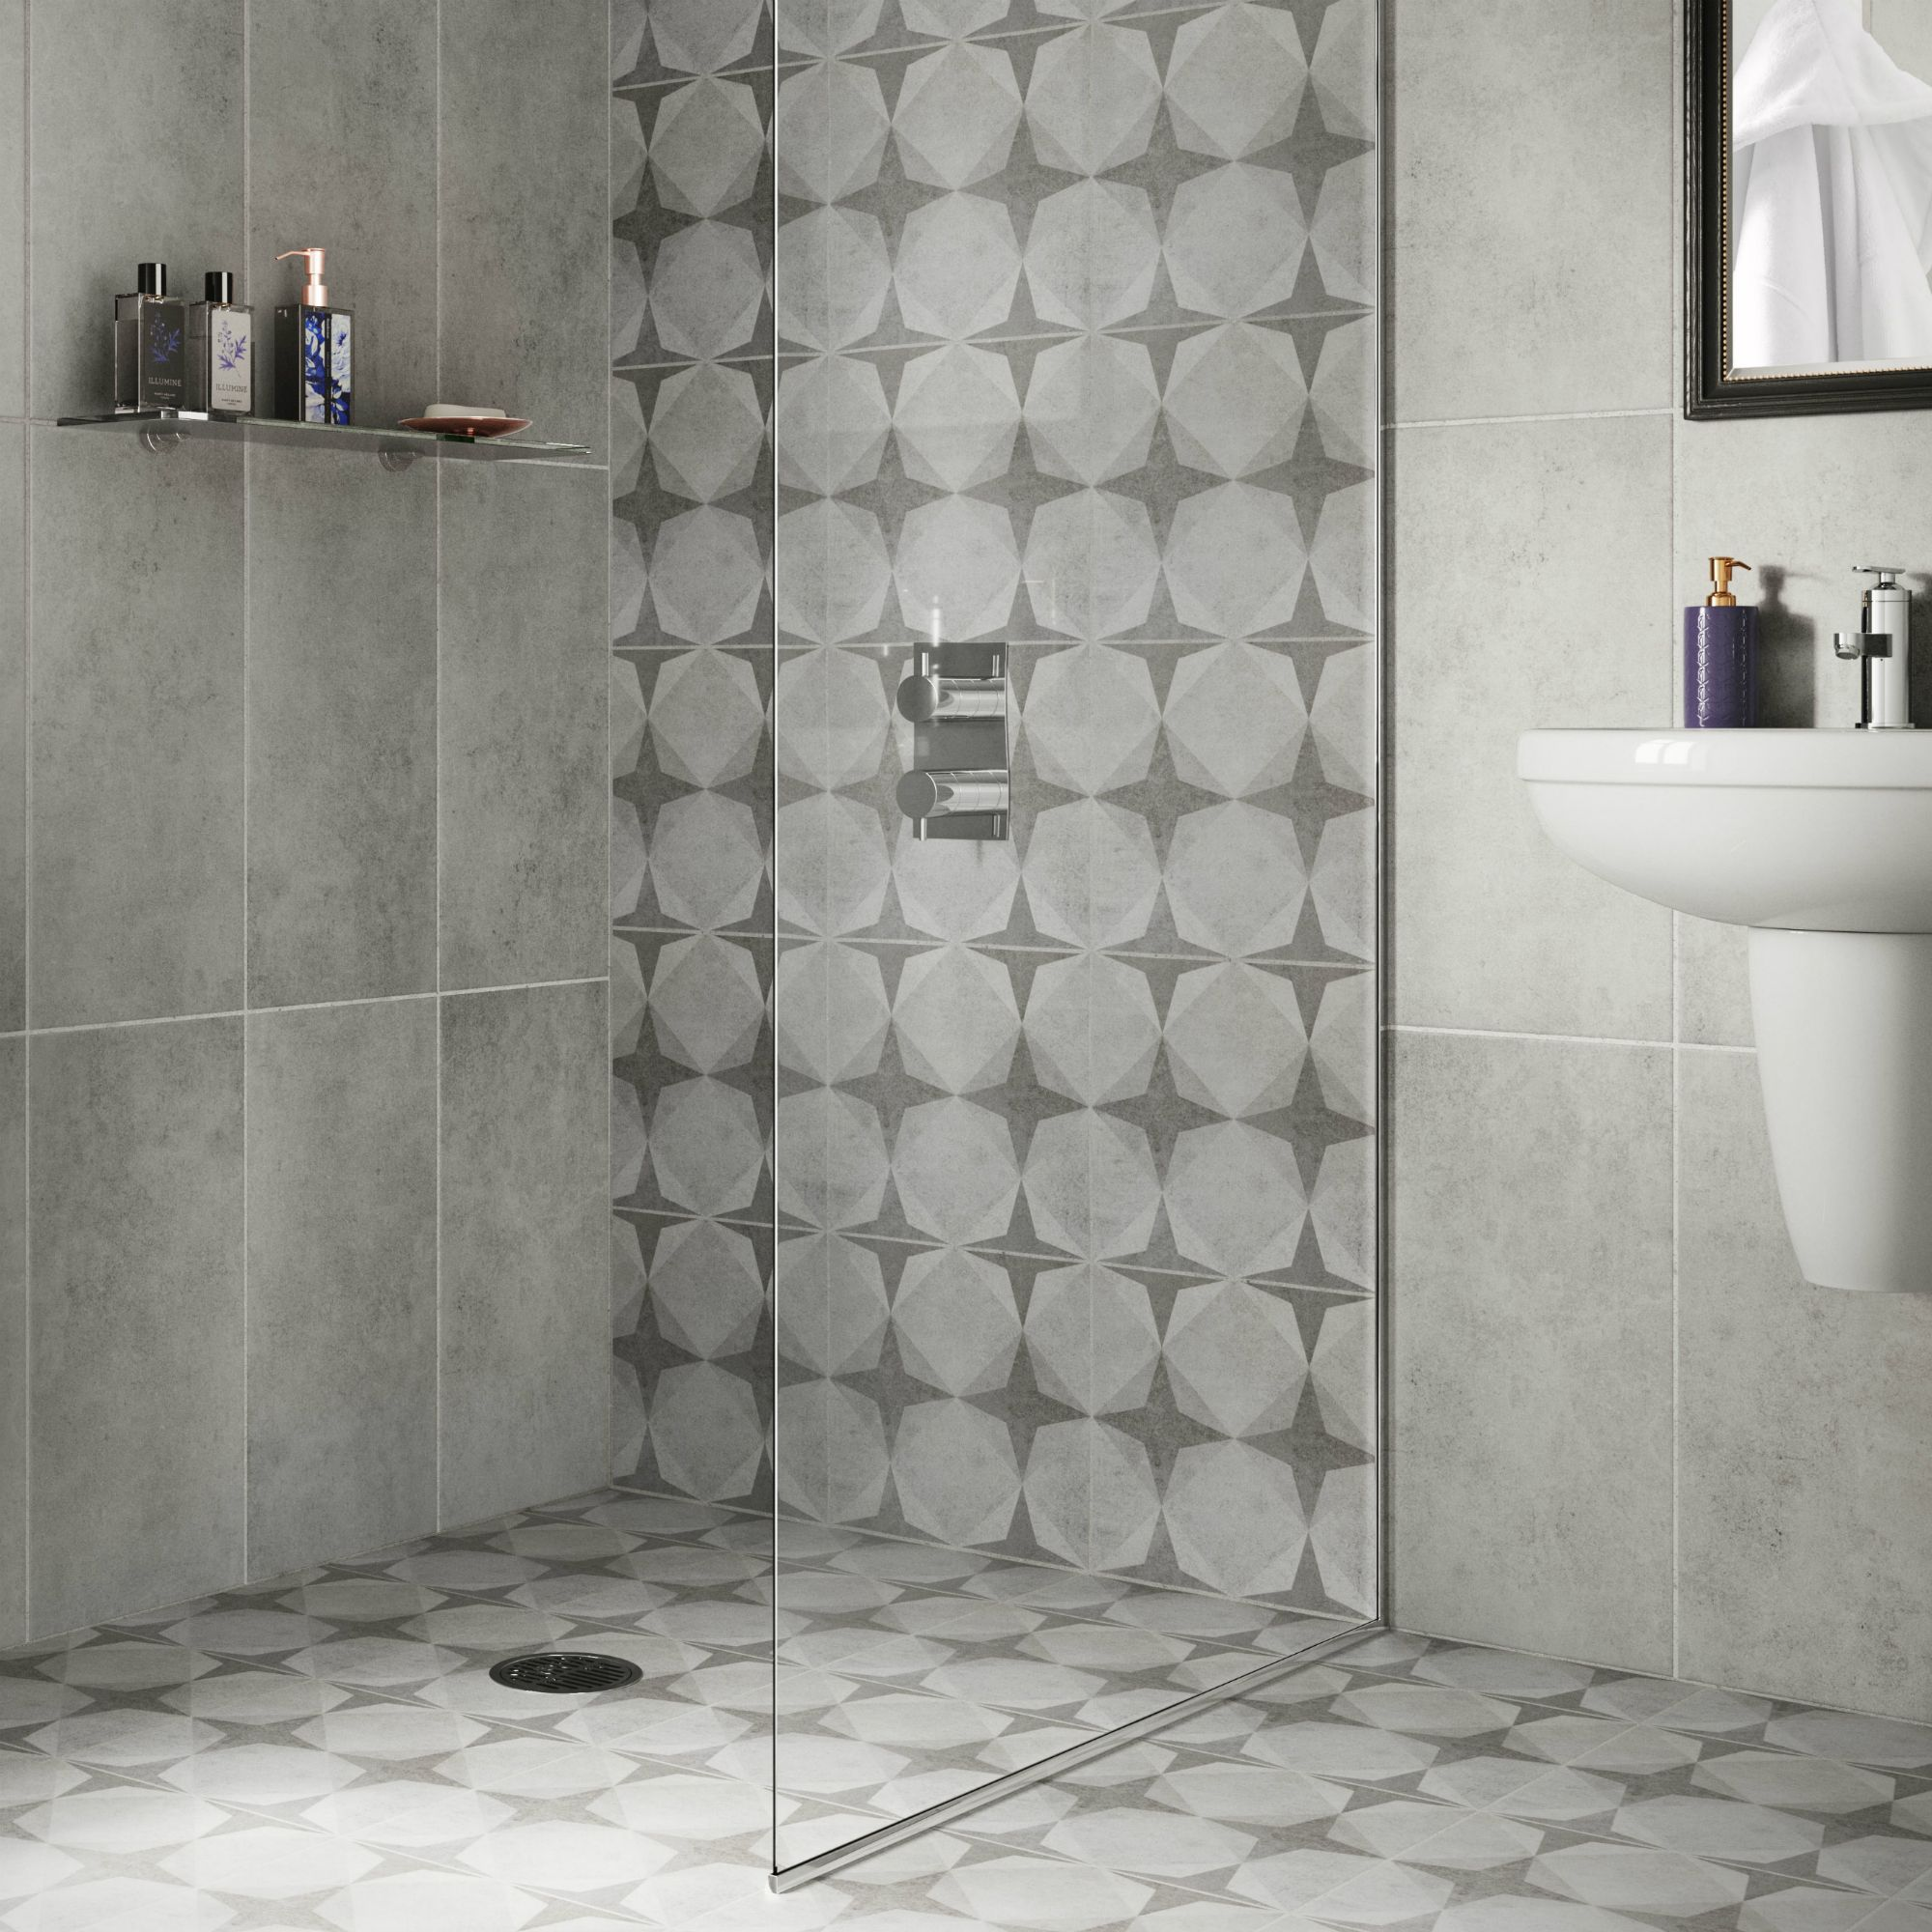 B And Q Bathroom Wall Tiles - Bathroom Design Ideas